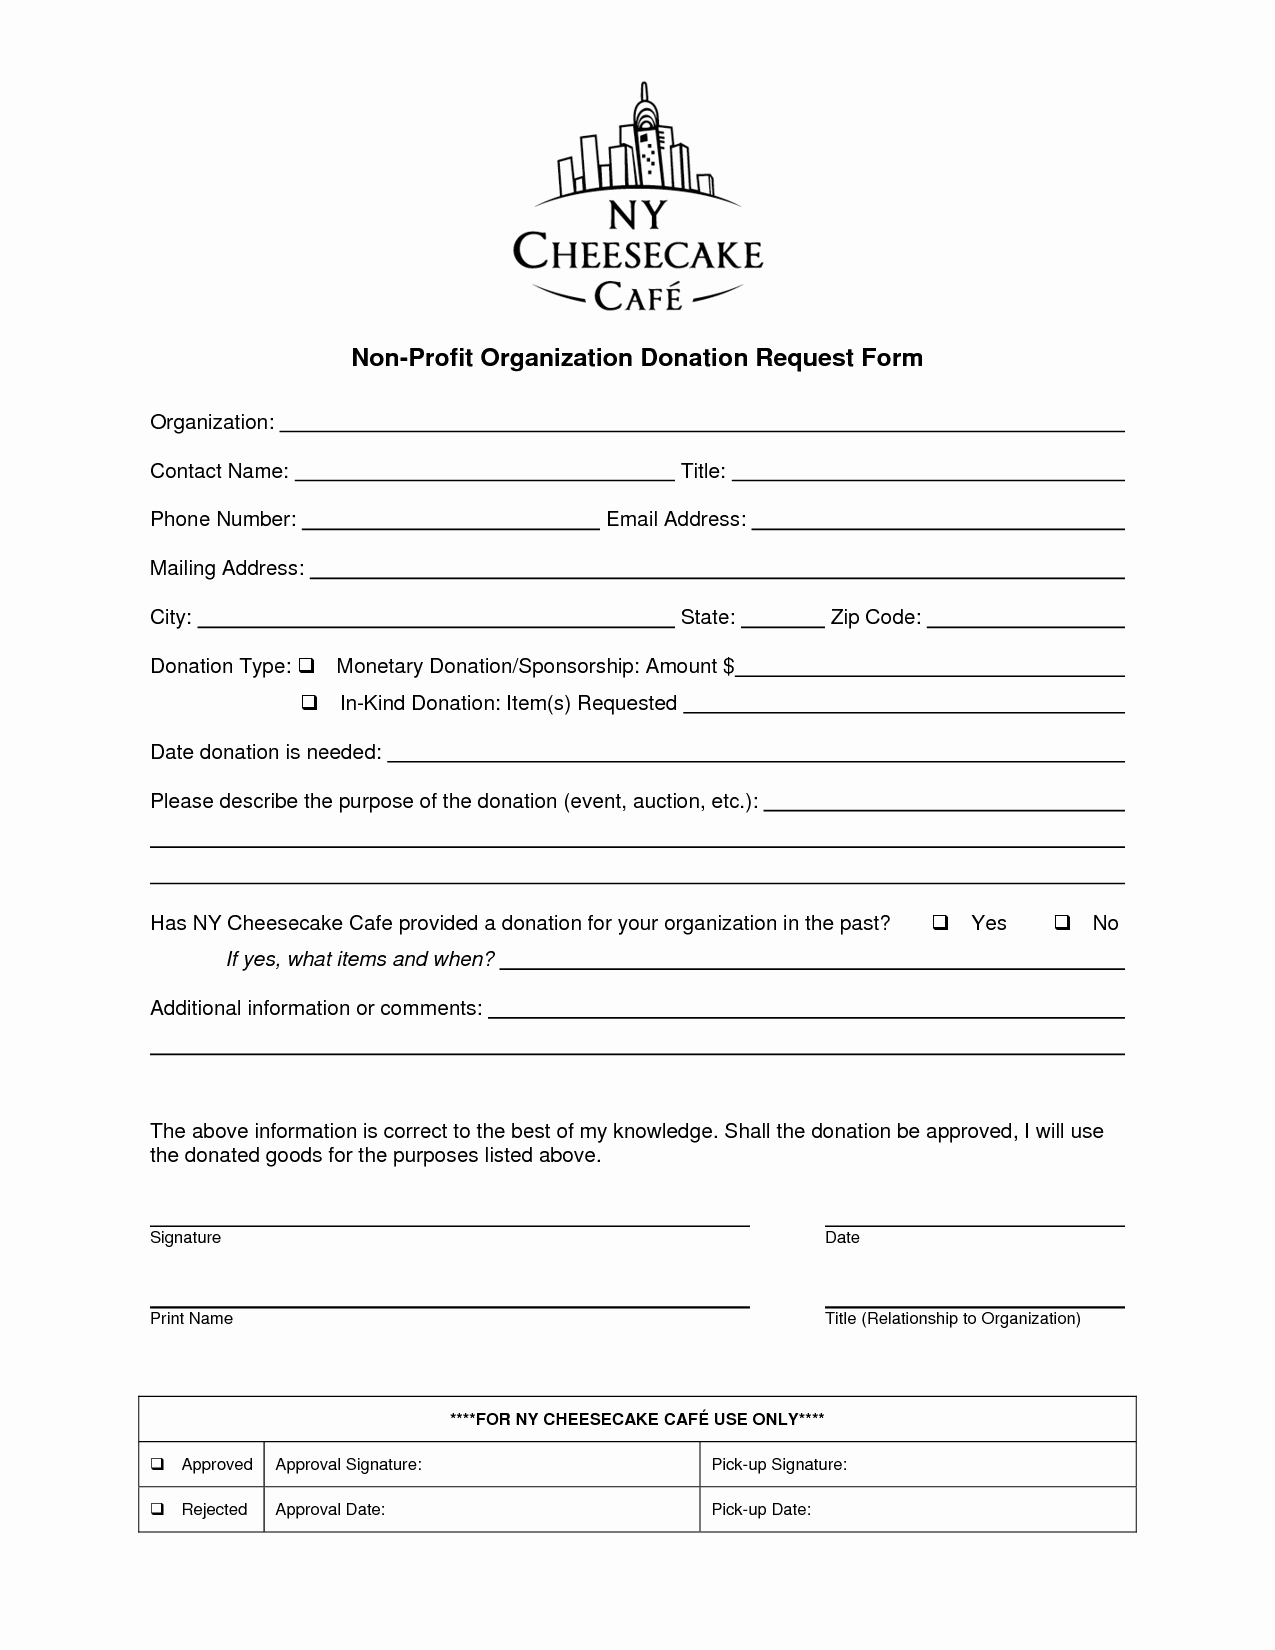 Non Profit organization Donation Request form organization